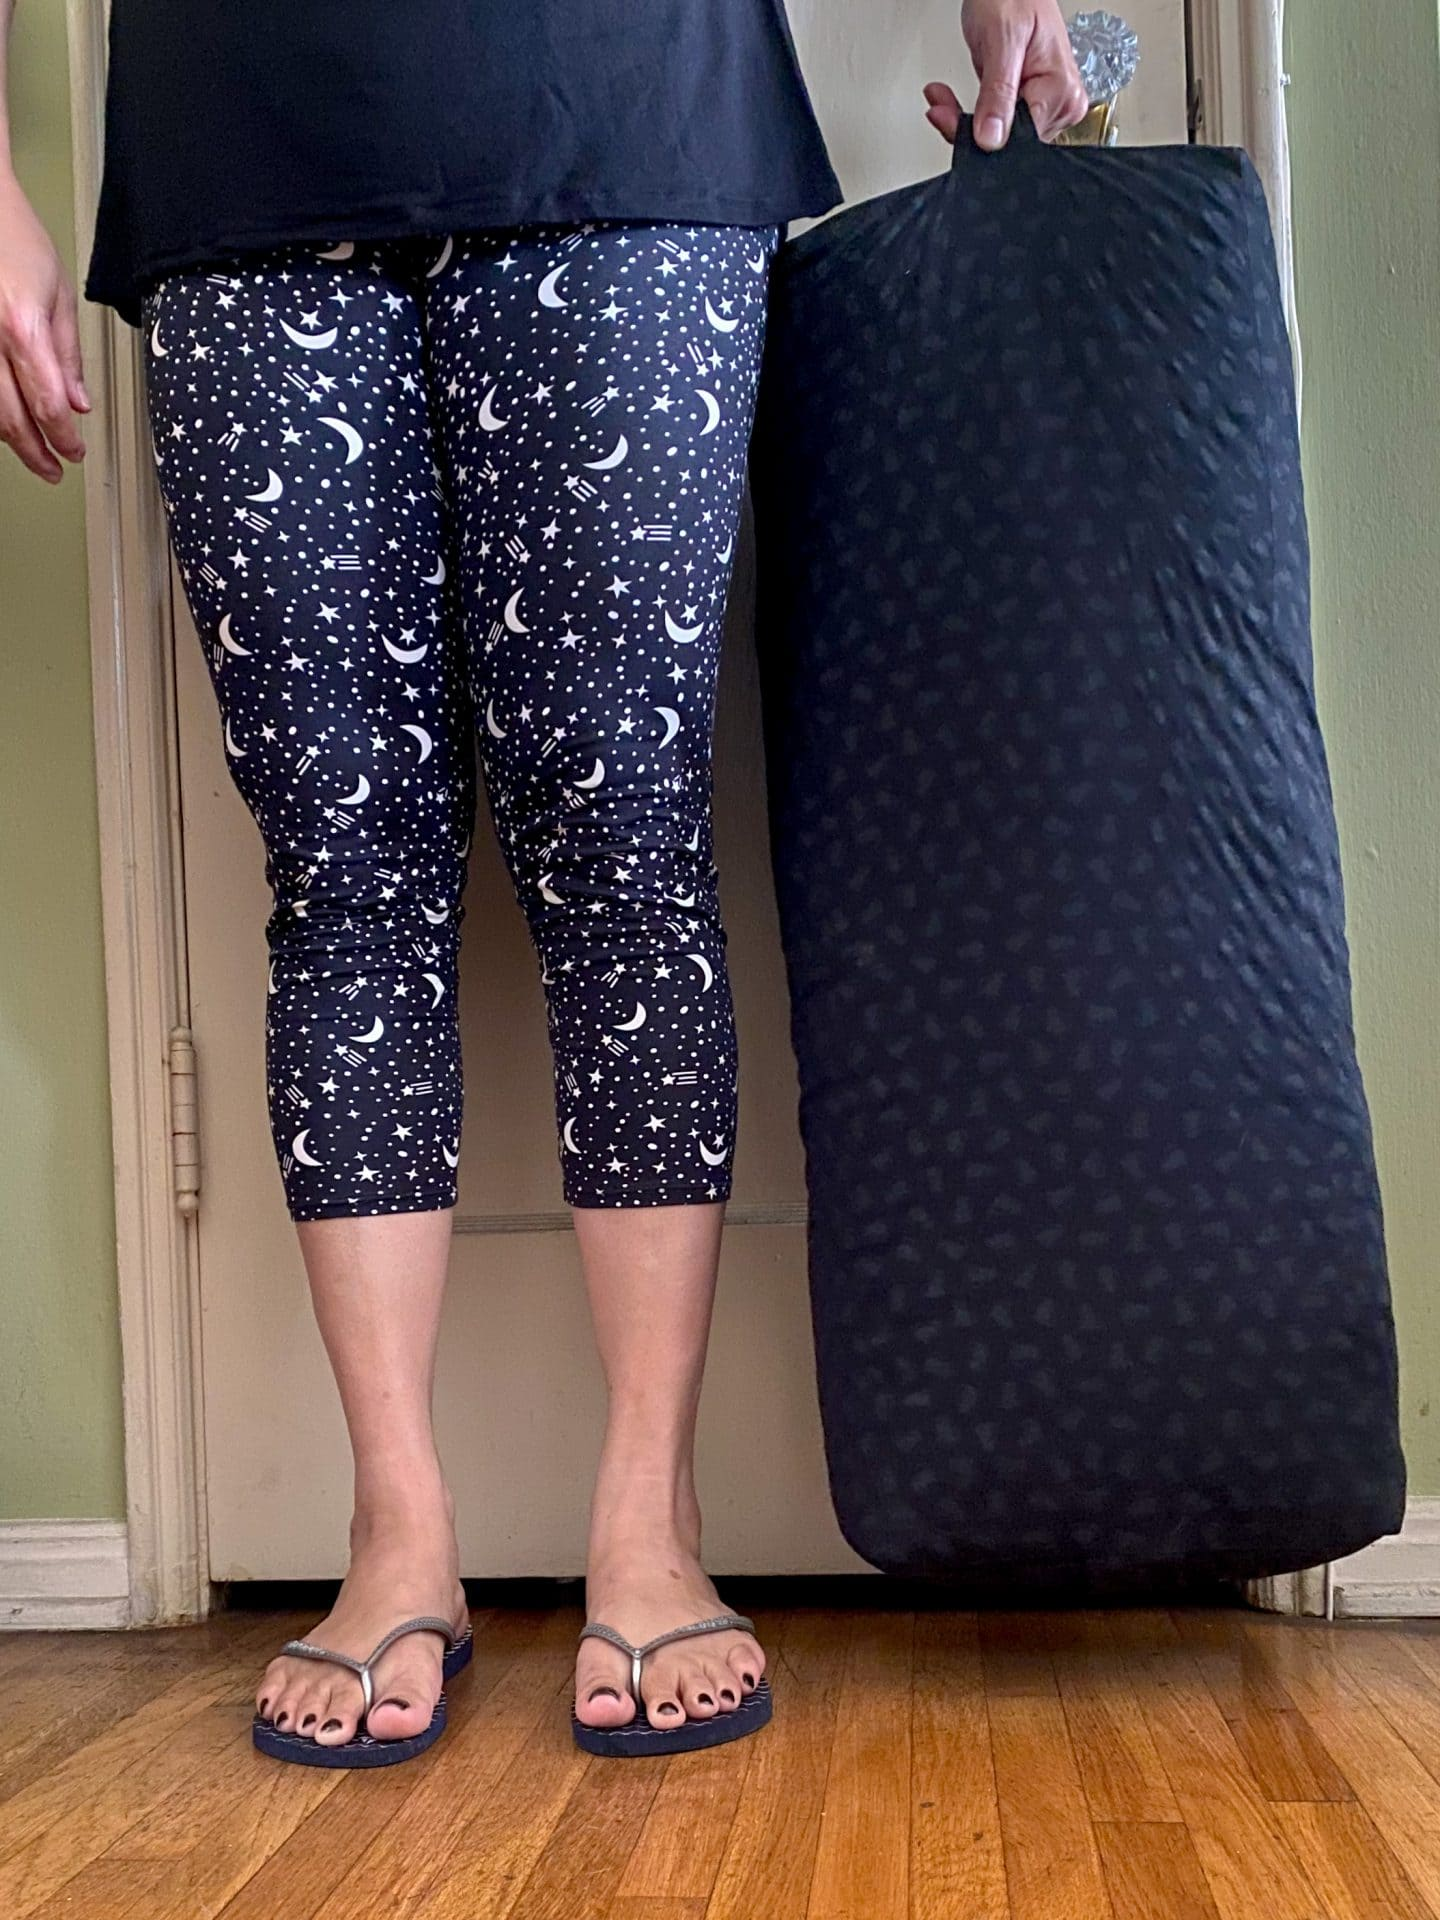 Image of a woman's body from the waist down, the woman is wearing black leggings with white half moon and stars, silver flip flops, and holding a diy yoga bolster made of black cotton with dark gray cats from its handle as she stands in front of an old fashioned door